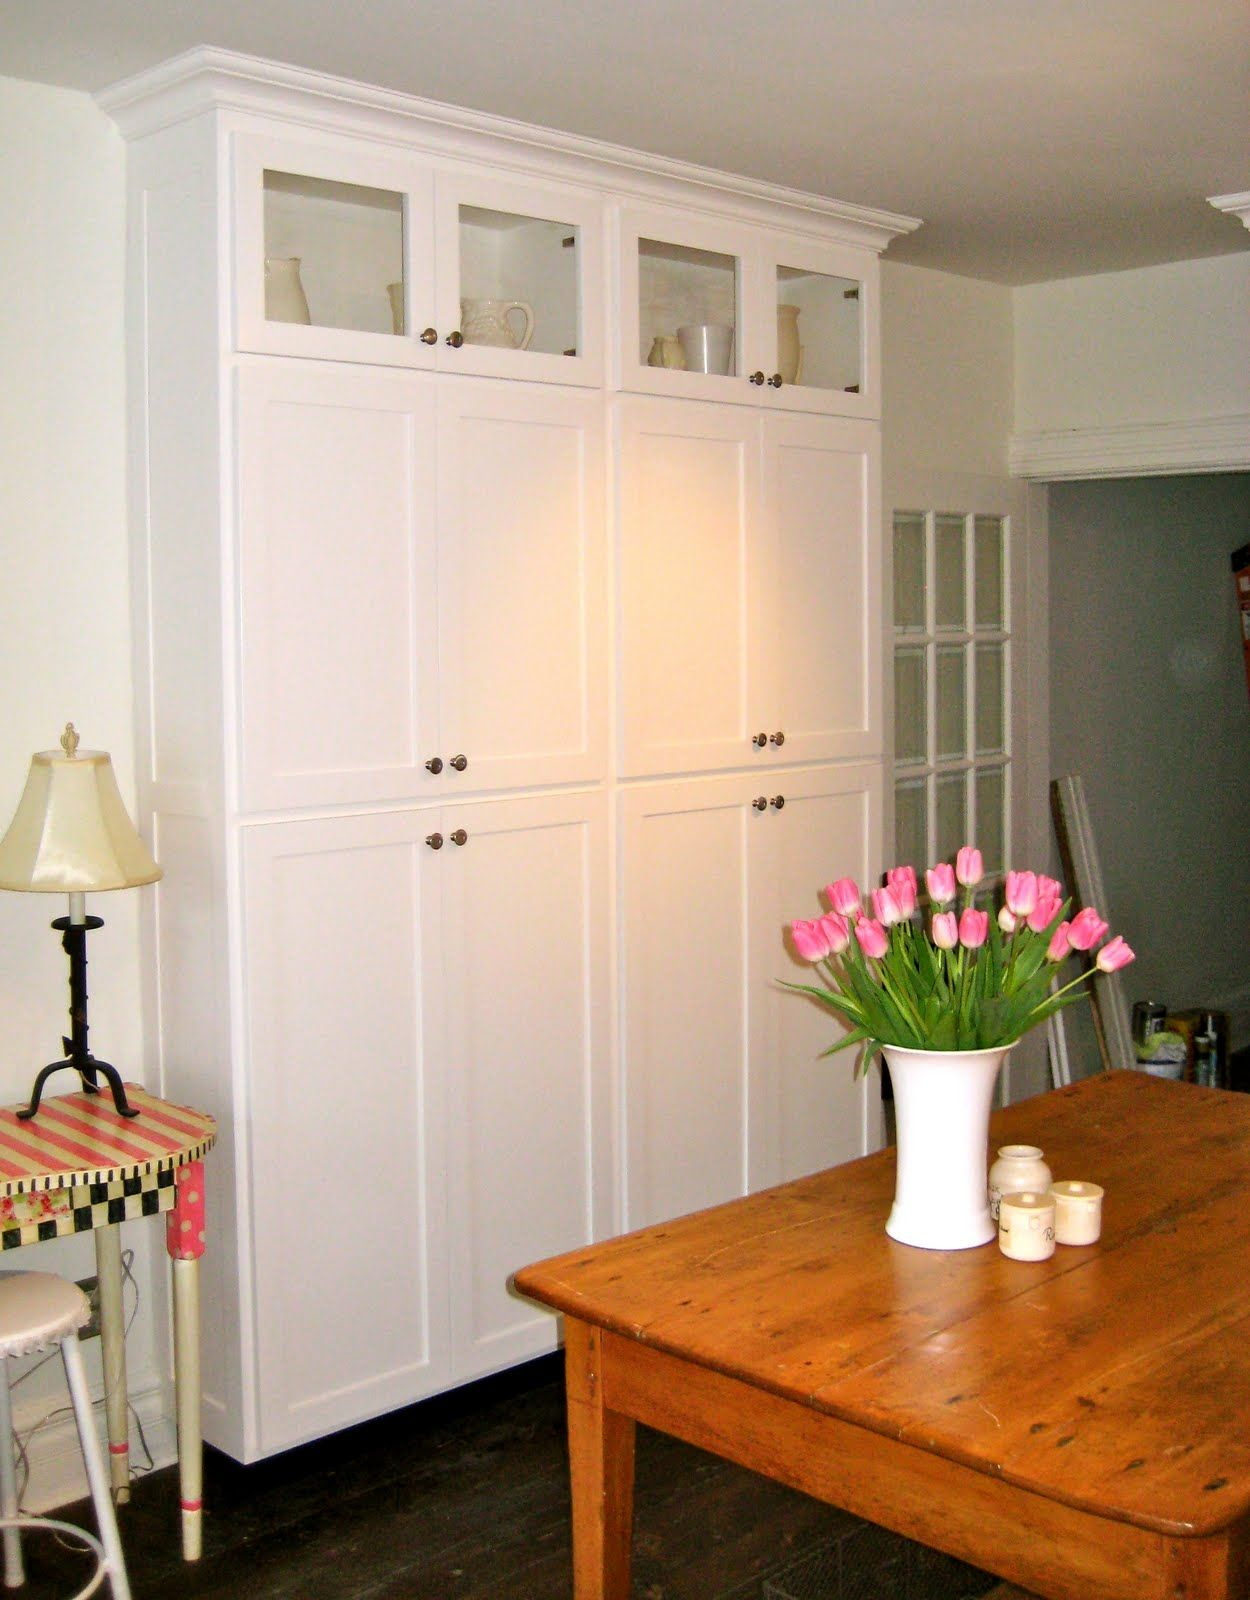 cabinet s cabinets metal unique kitchen storage cabi freestanding kitchens with free ikea of gallery standing pantry best